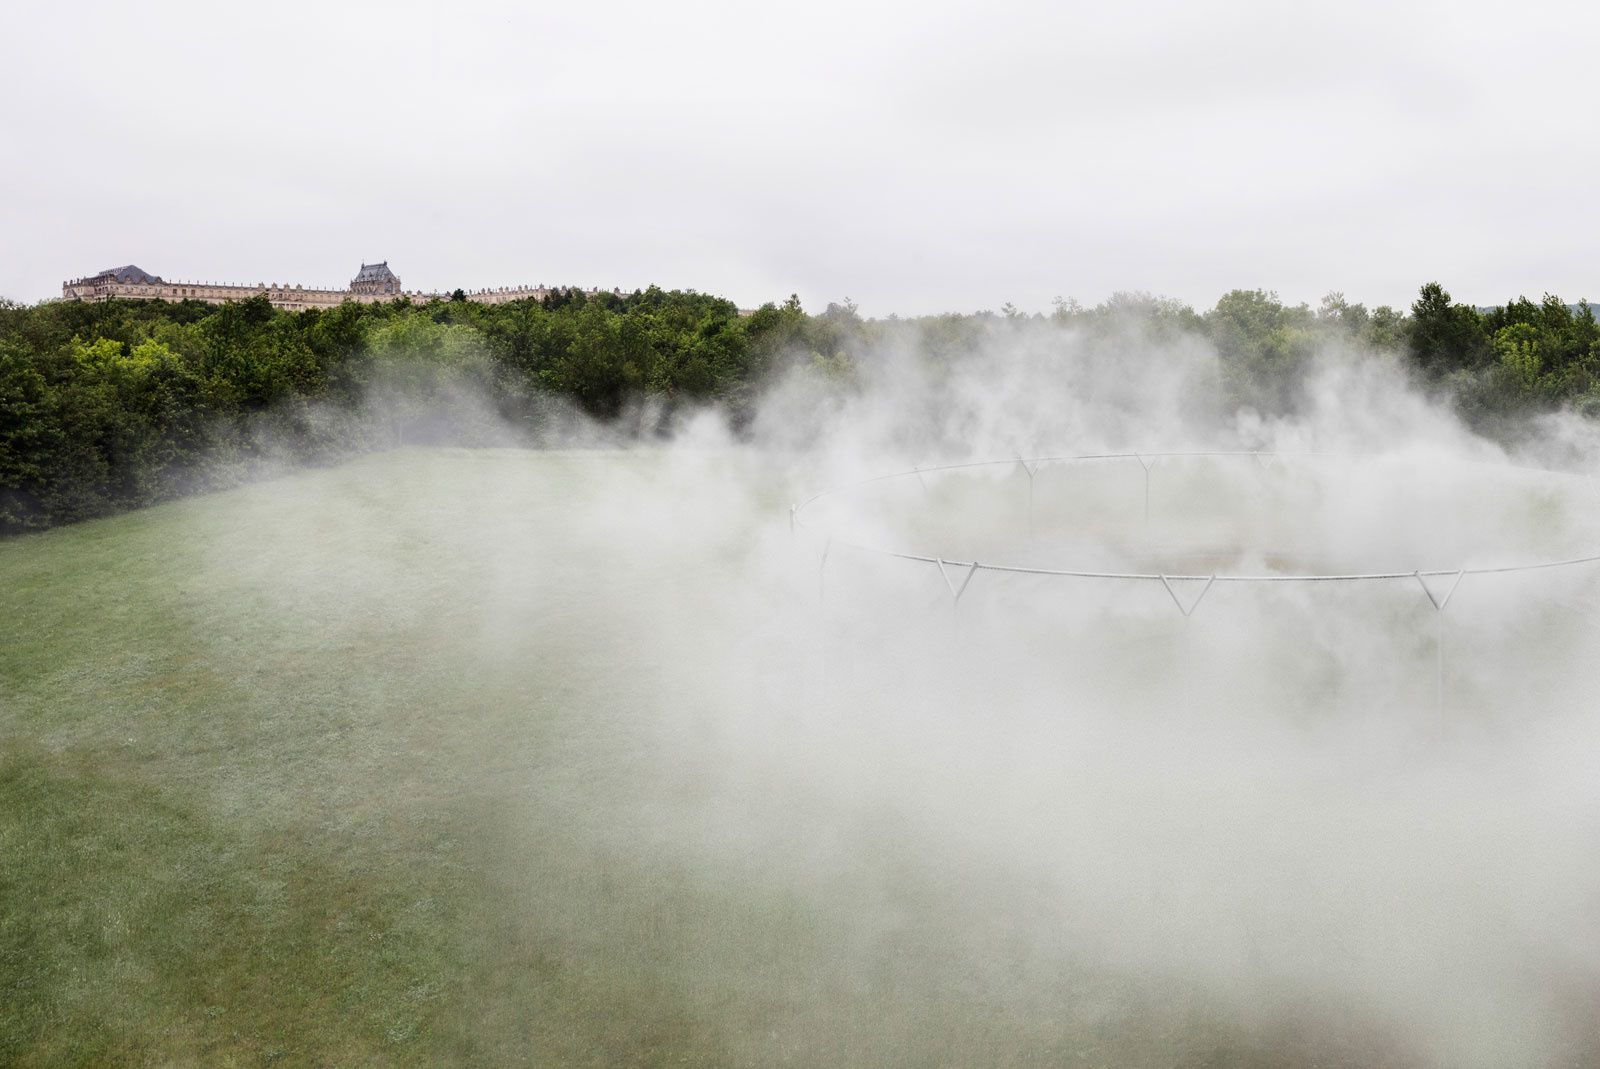 """Fog assembly"", 2016 d'Olafur Eliasson. Installation au Chateau de Versailles. Photo: Anders Sune Berg - Courtesy of the artist&#x3B; neugerriemschneider, Berlin&#x3B; Tanya Bonakdar Gallery, New York"